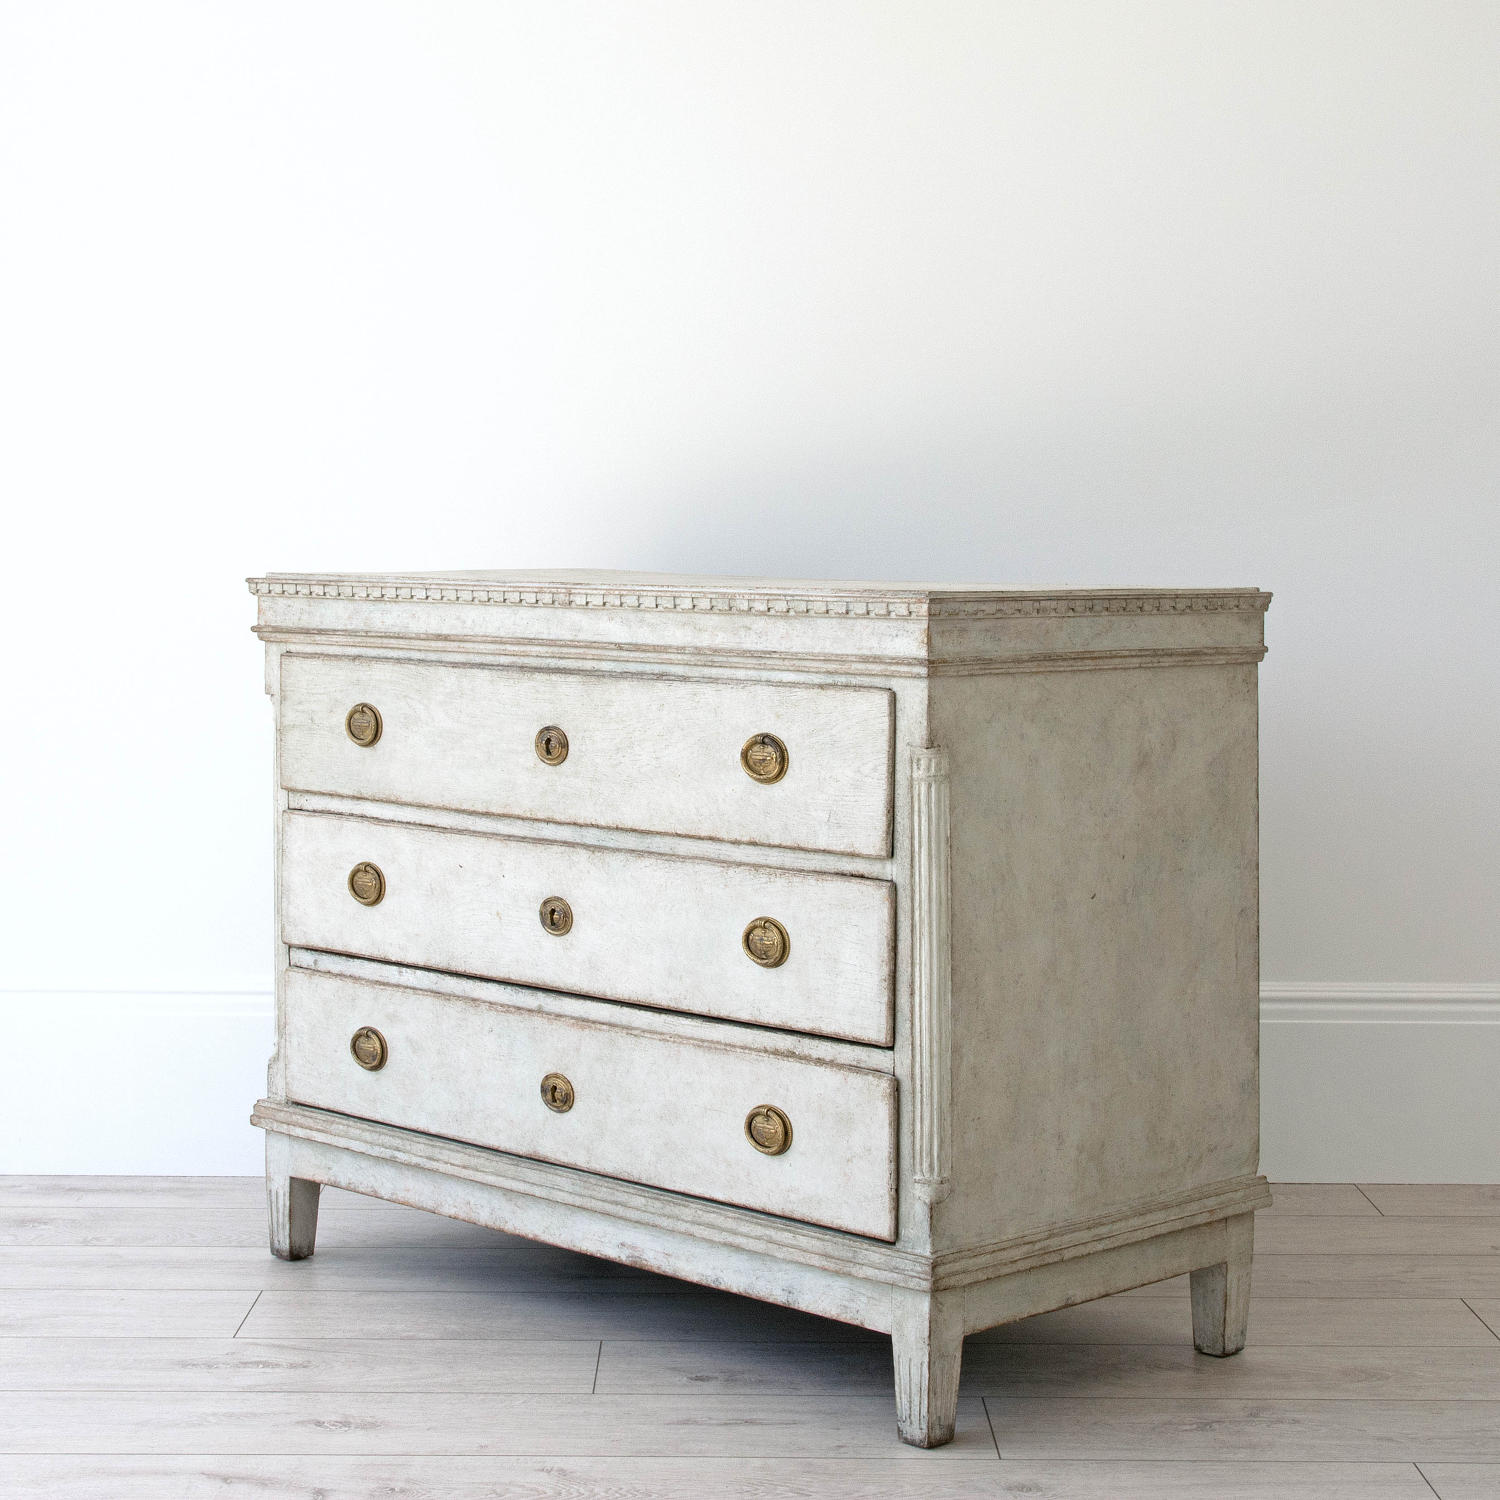 VERY FINE GUSTAVIAN PERIOD SCANDINAVIAN CHEST